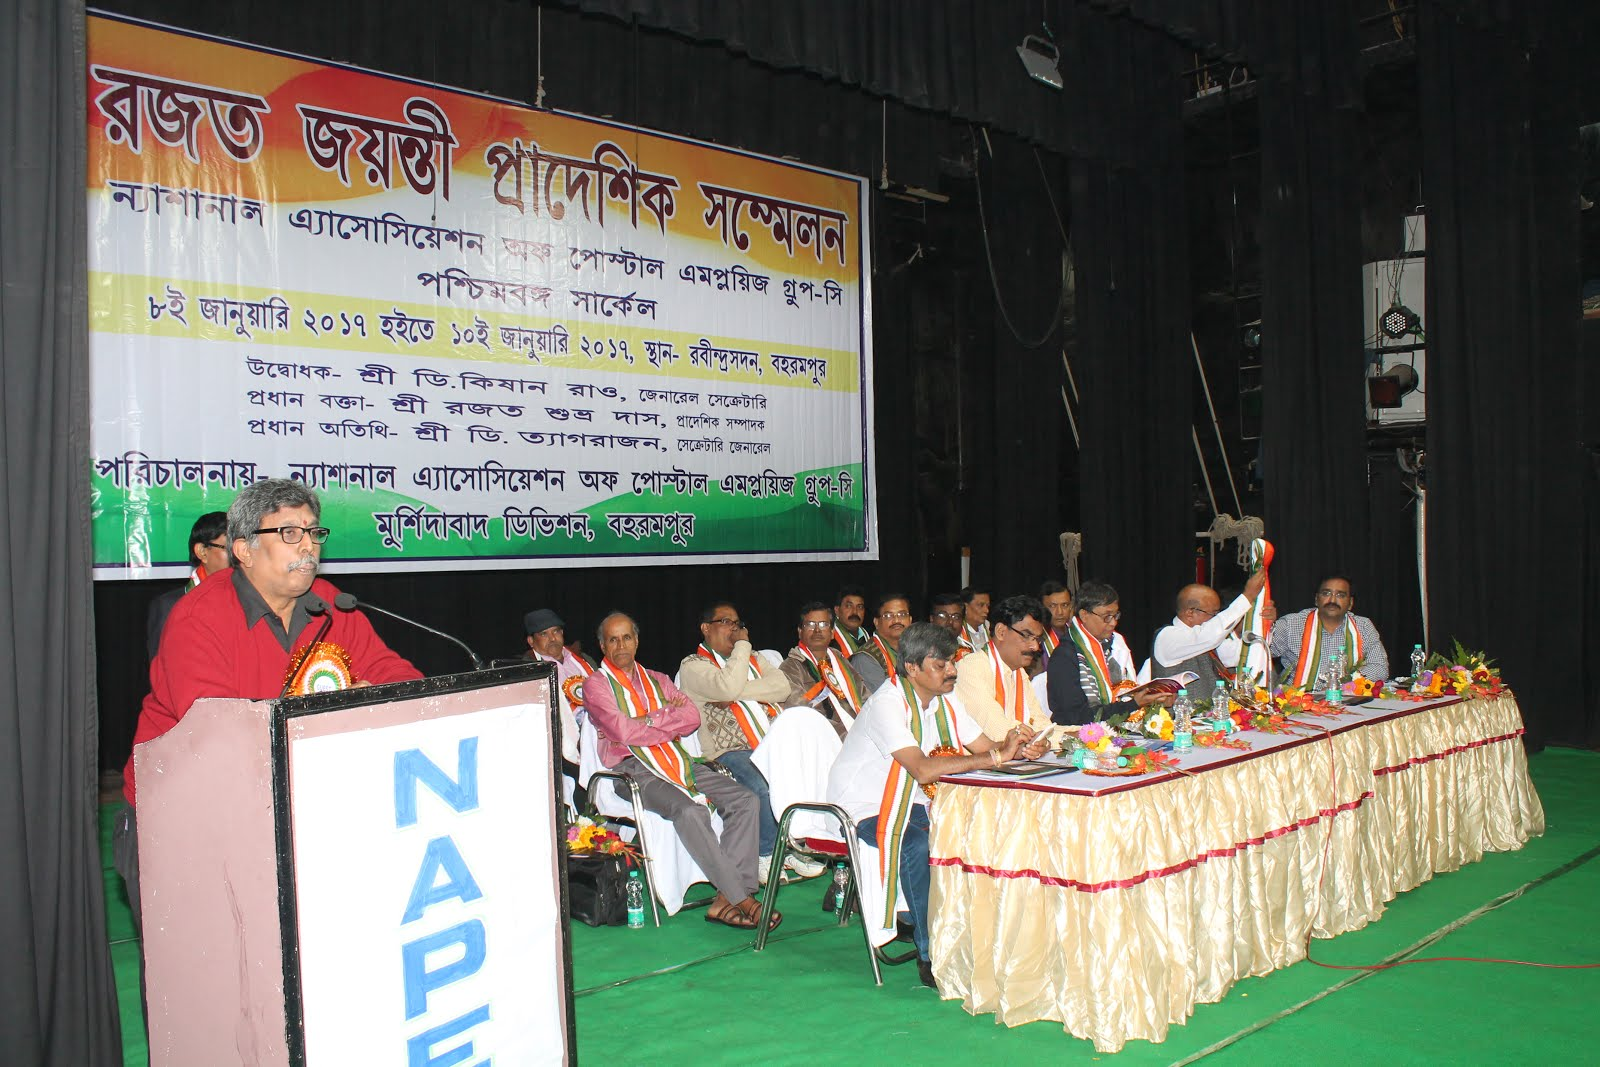 25 TH CIRCLE CONFERENCE at BERHAMPORE MURSHIDABAD